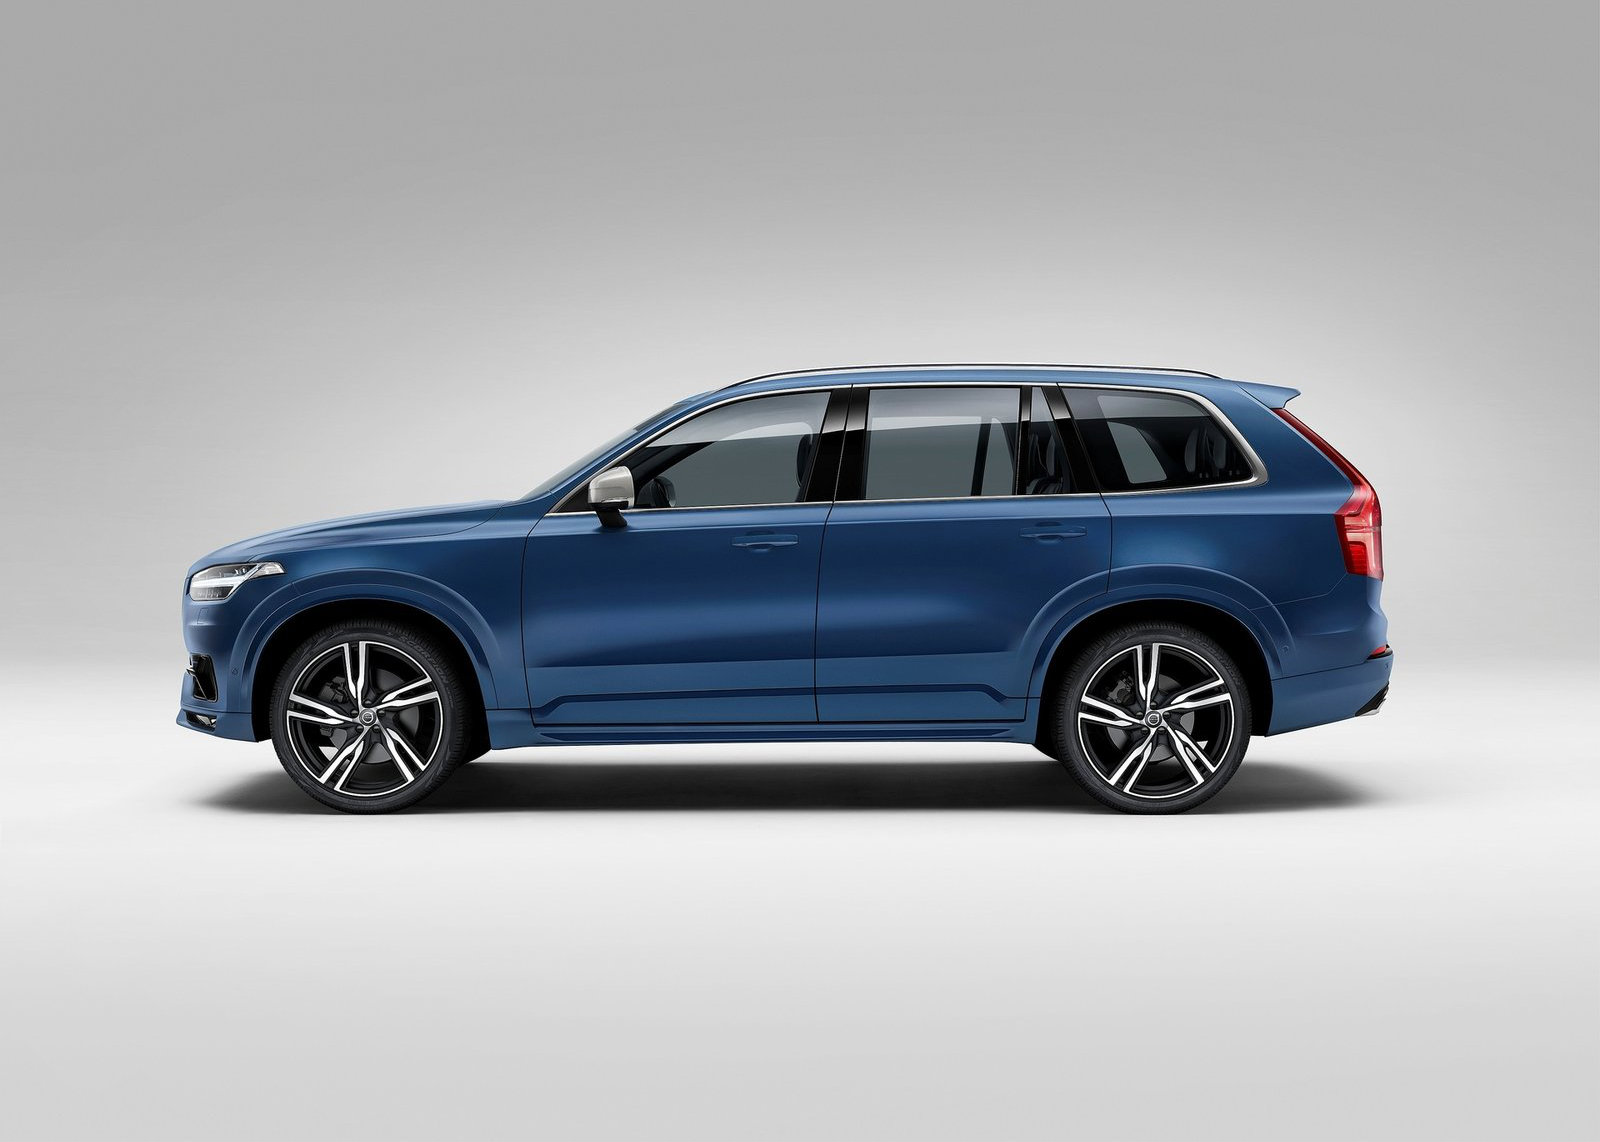 Volvo To Assemble CKD Kits Of The XC90 In India - autoevolution